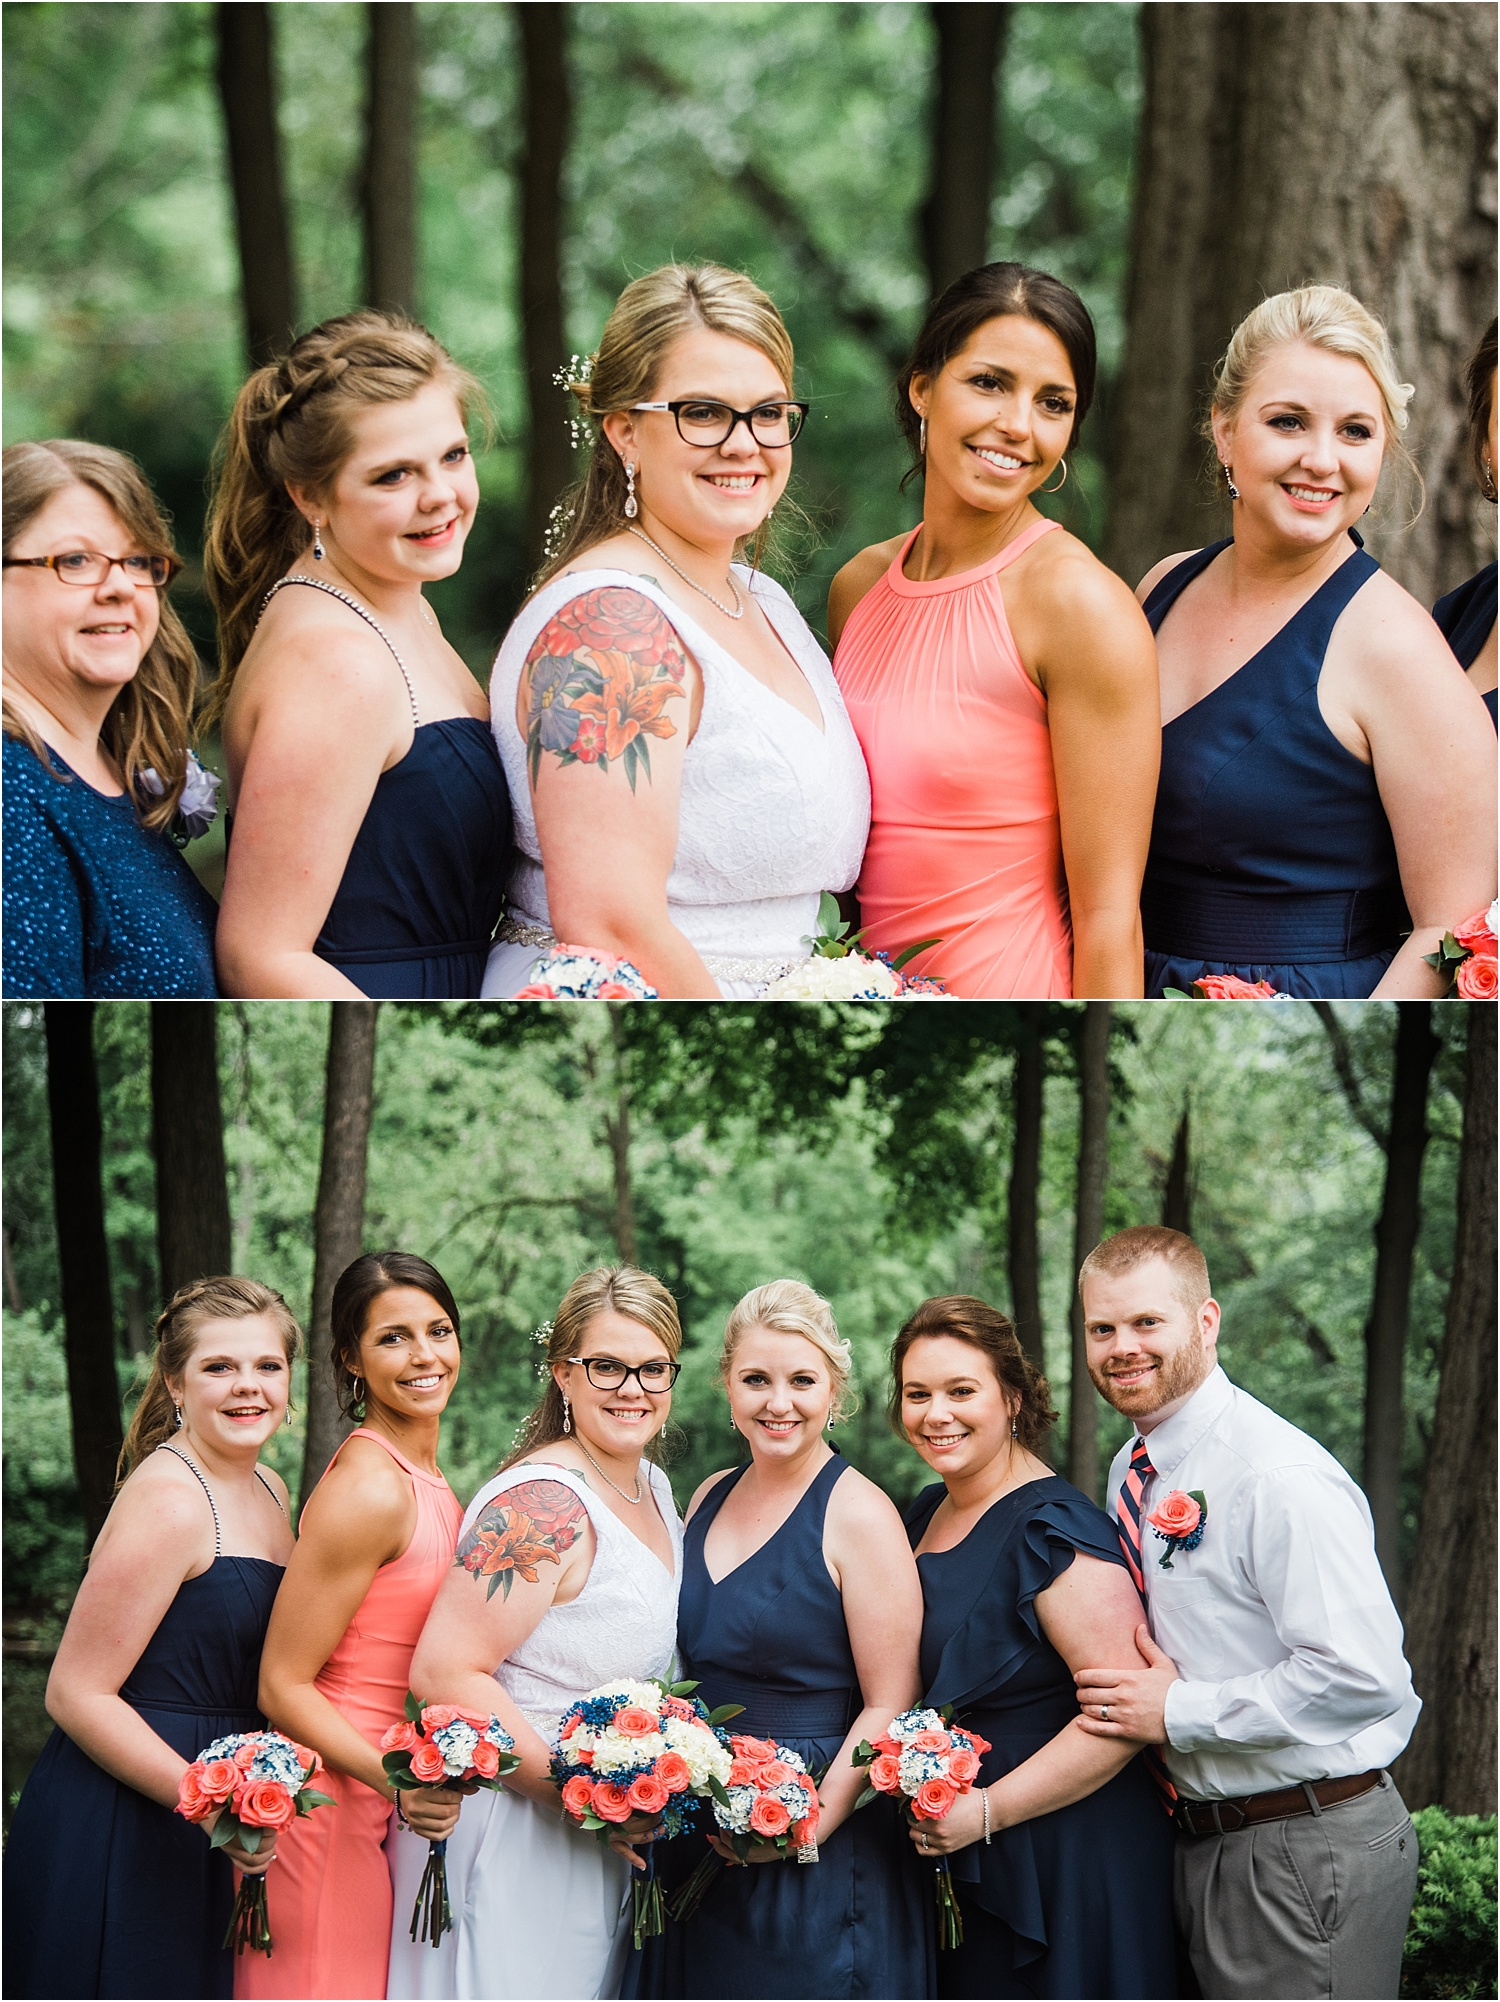 The_Riverview_Simsbury_Connecticut_Wedding_LGBT_Weddings_037.jpg